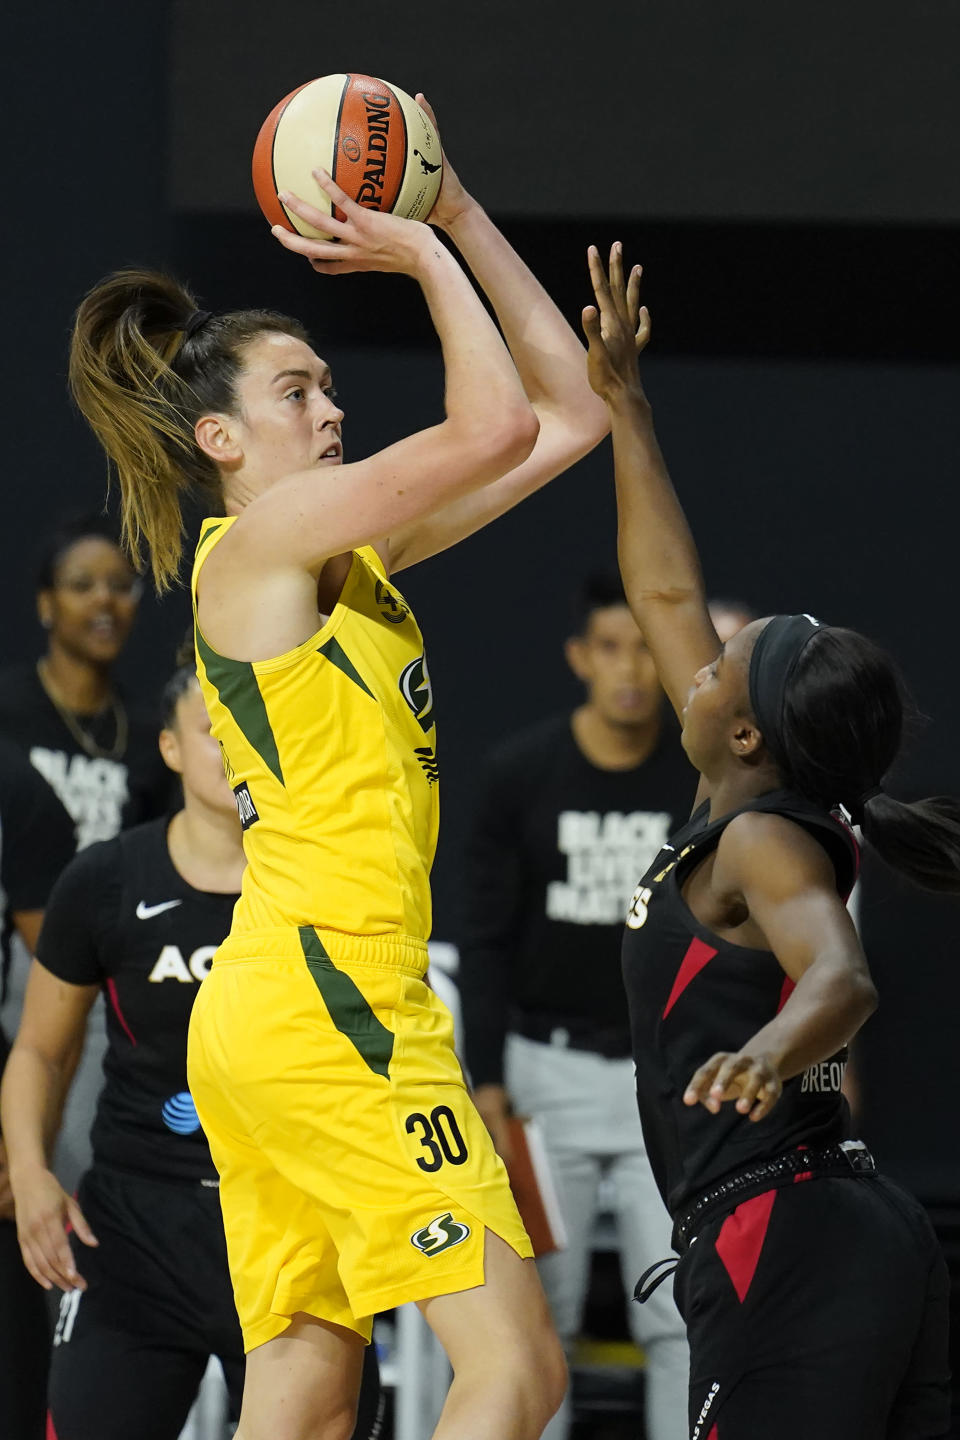 Seattle Storm forward Breanna Stewart (30) shoots over Las Vegas Aces guard Jackie Young (0) during the second half of Game 1 of basketball's WNBA Finals Friday, Oct. 2, 2020, in Bradenton, Fla. (AP Photo/Chris O'Meara)